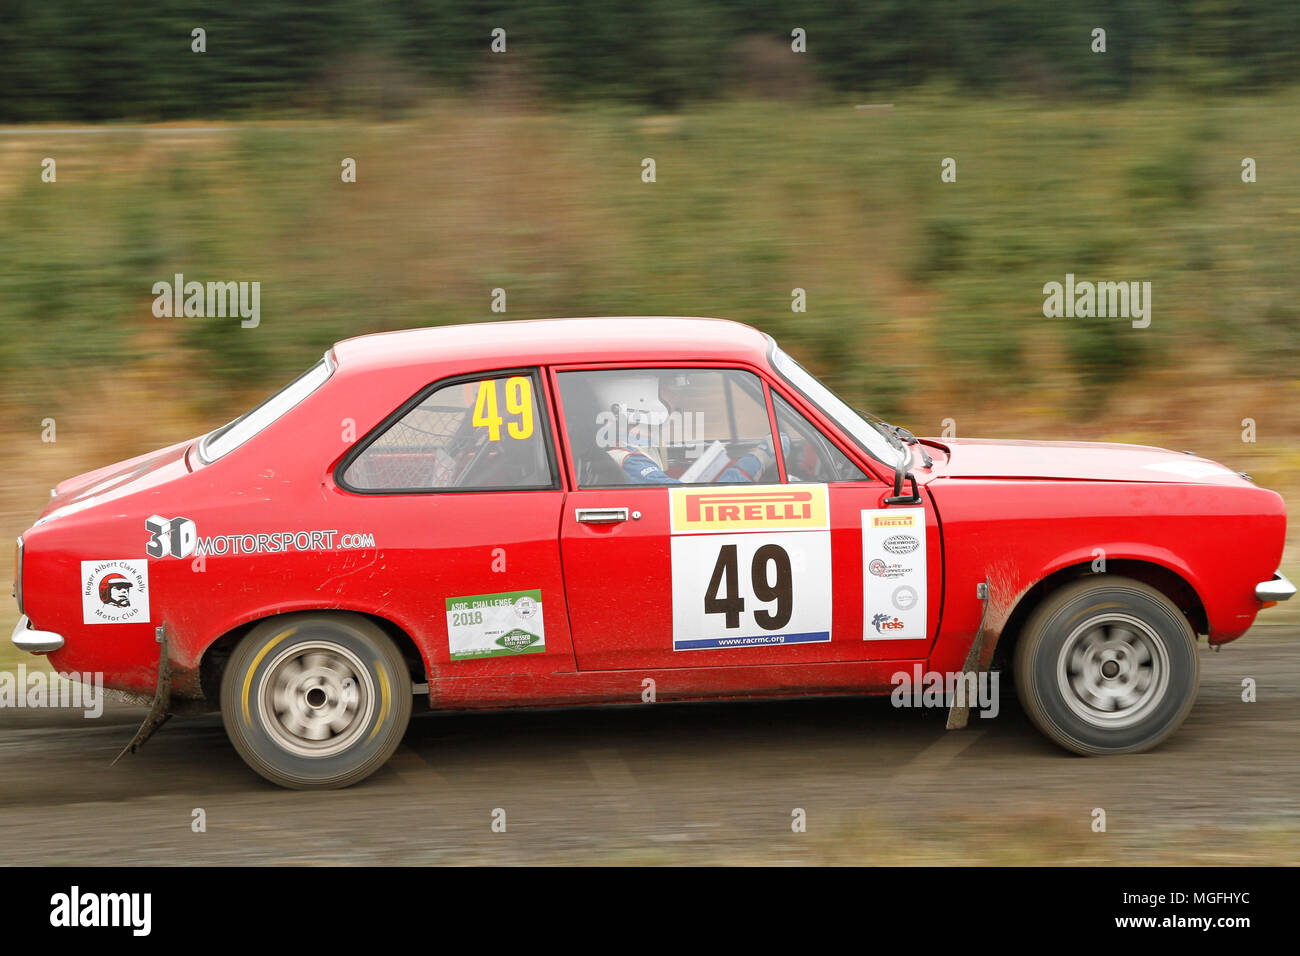 Kielder Forest, Northumberland, UK, 28 April 2018. Rally drivers compete in the Pirelli International Rally and the FUCHS Lubricant MSA British Historic Rally Championship. (Special Stage 1 - Pundershaw 1). Andrew Cheal/Alamy Live News - Stock Image